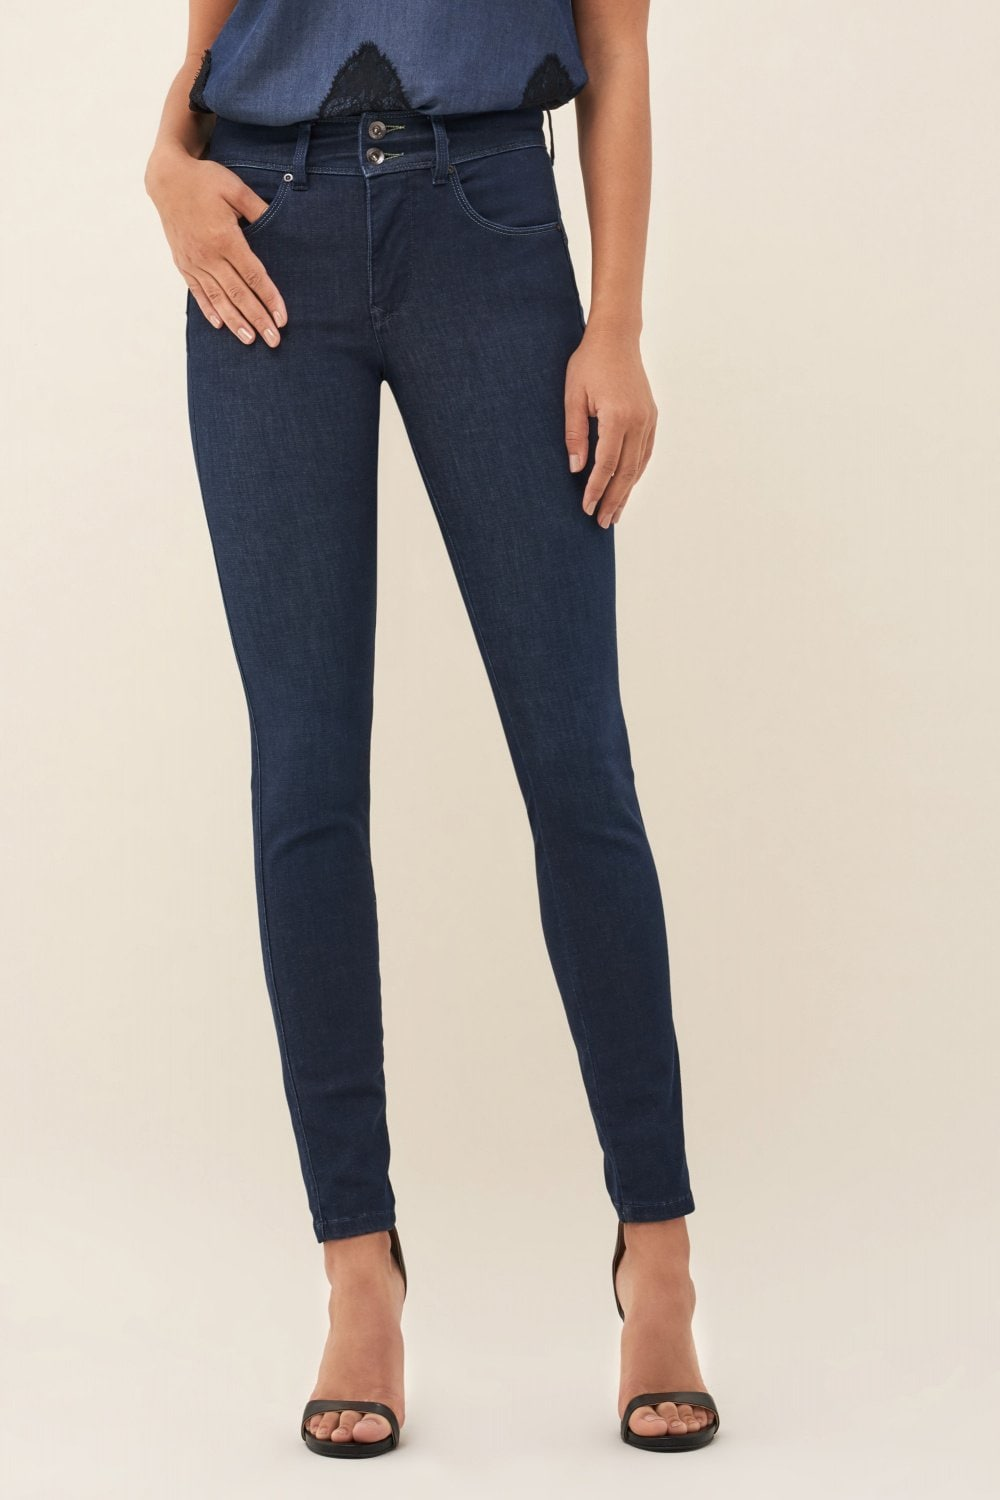 Push In Secret skinny Denim2GO jeans - Salsa